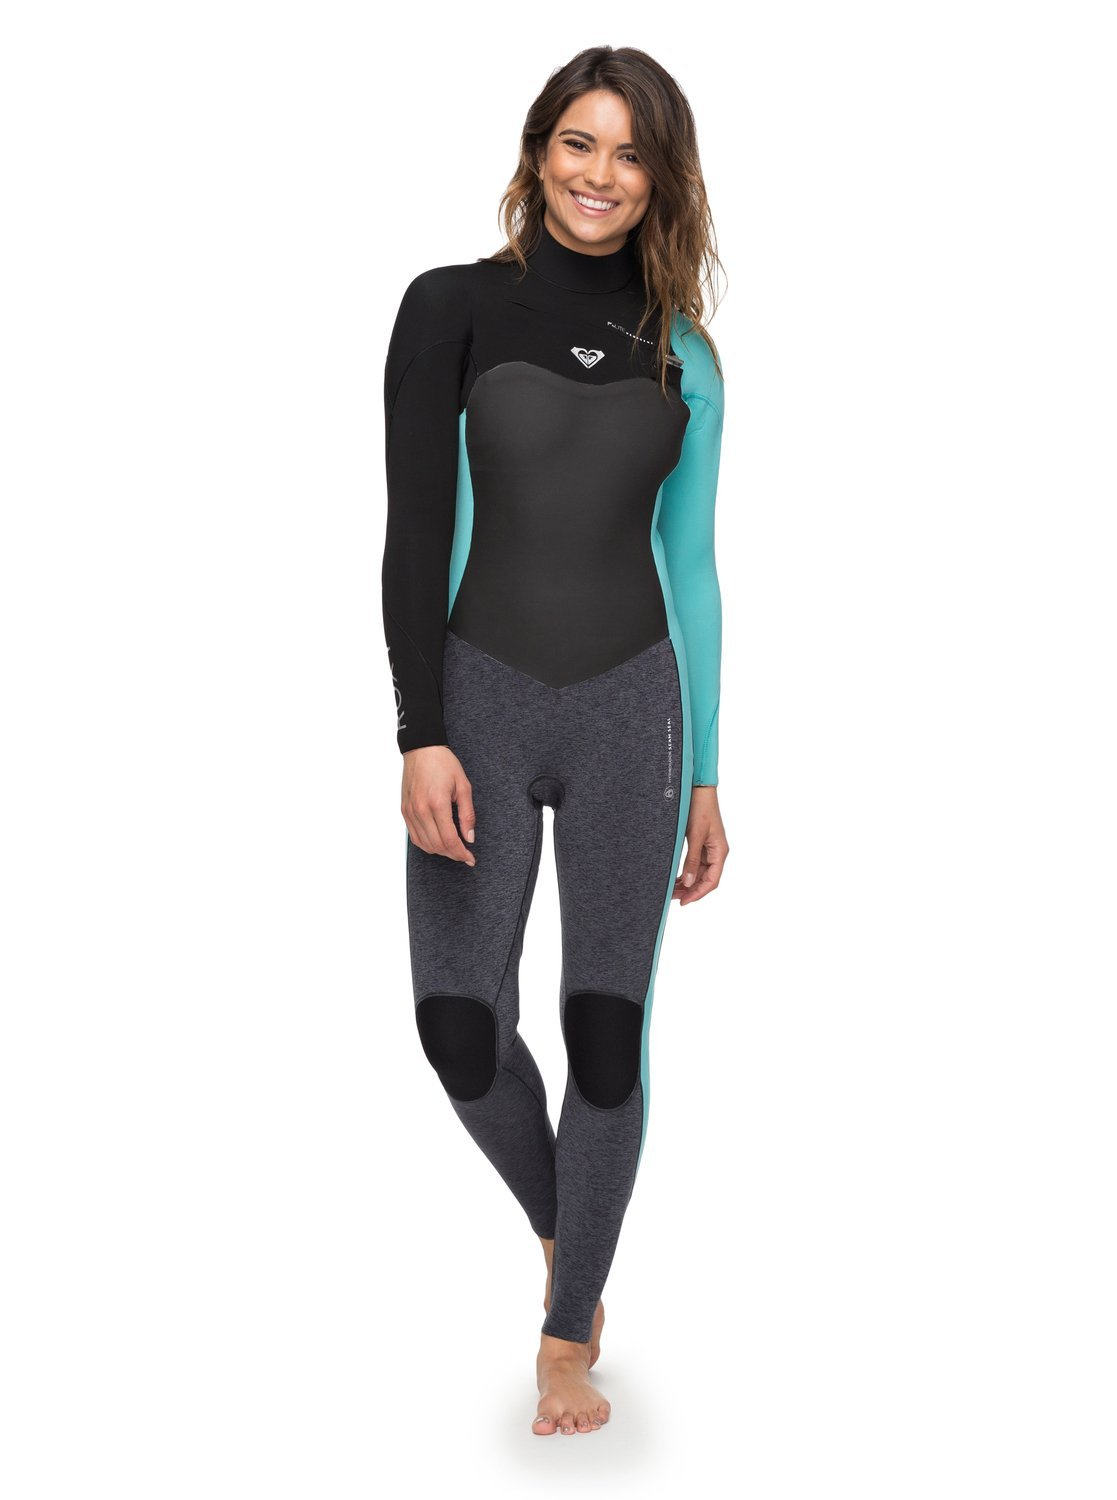 abadf354e9 Amazon.com  Roxy Womens 3 2Mm Performance Chest Zip Wetsuit Erjw103031   Sports   Outdoors